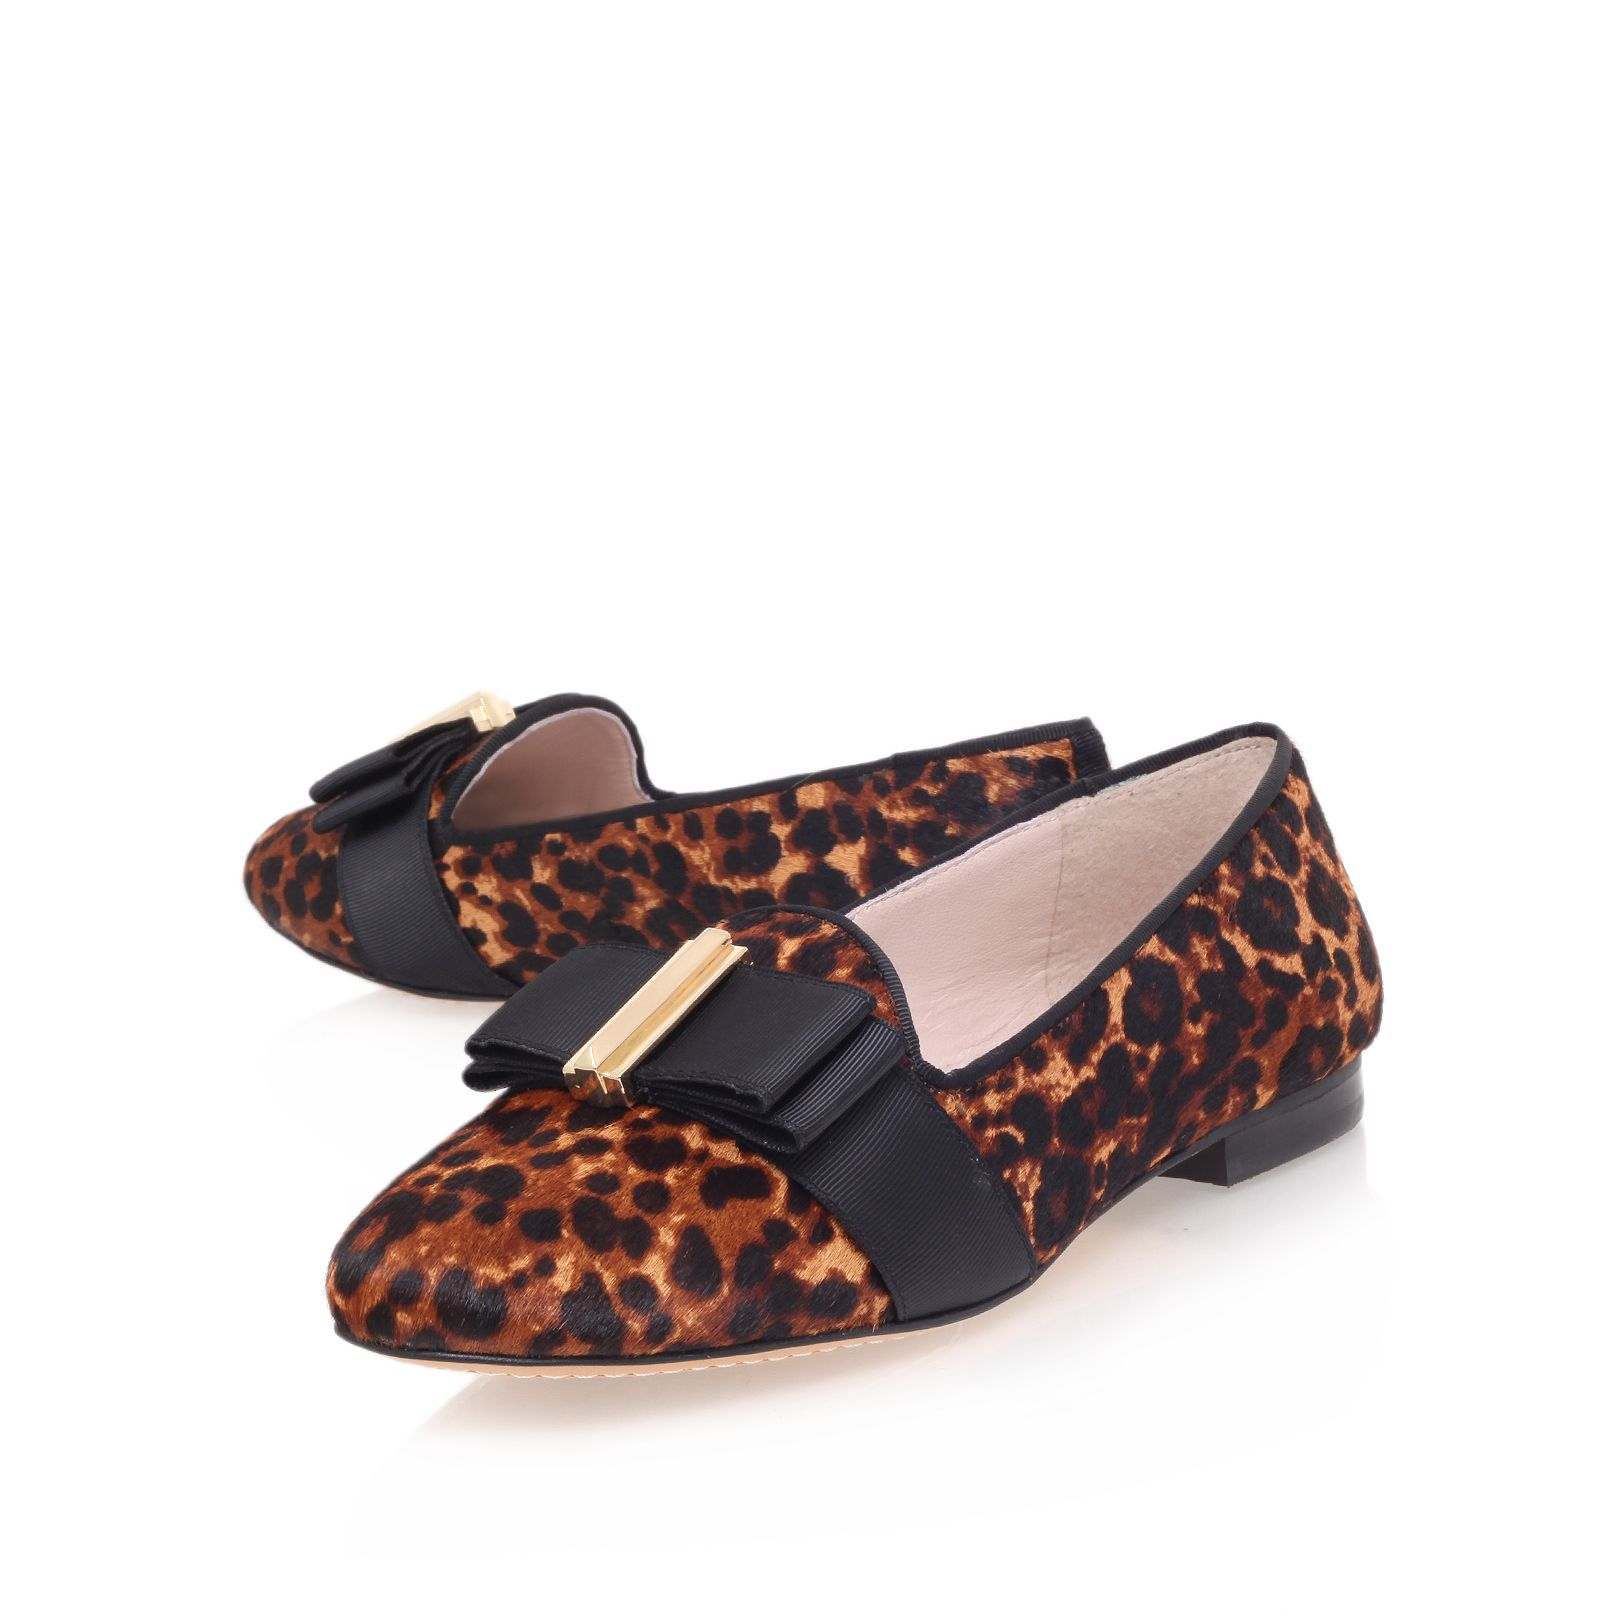 Ecie flat slipper shoes